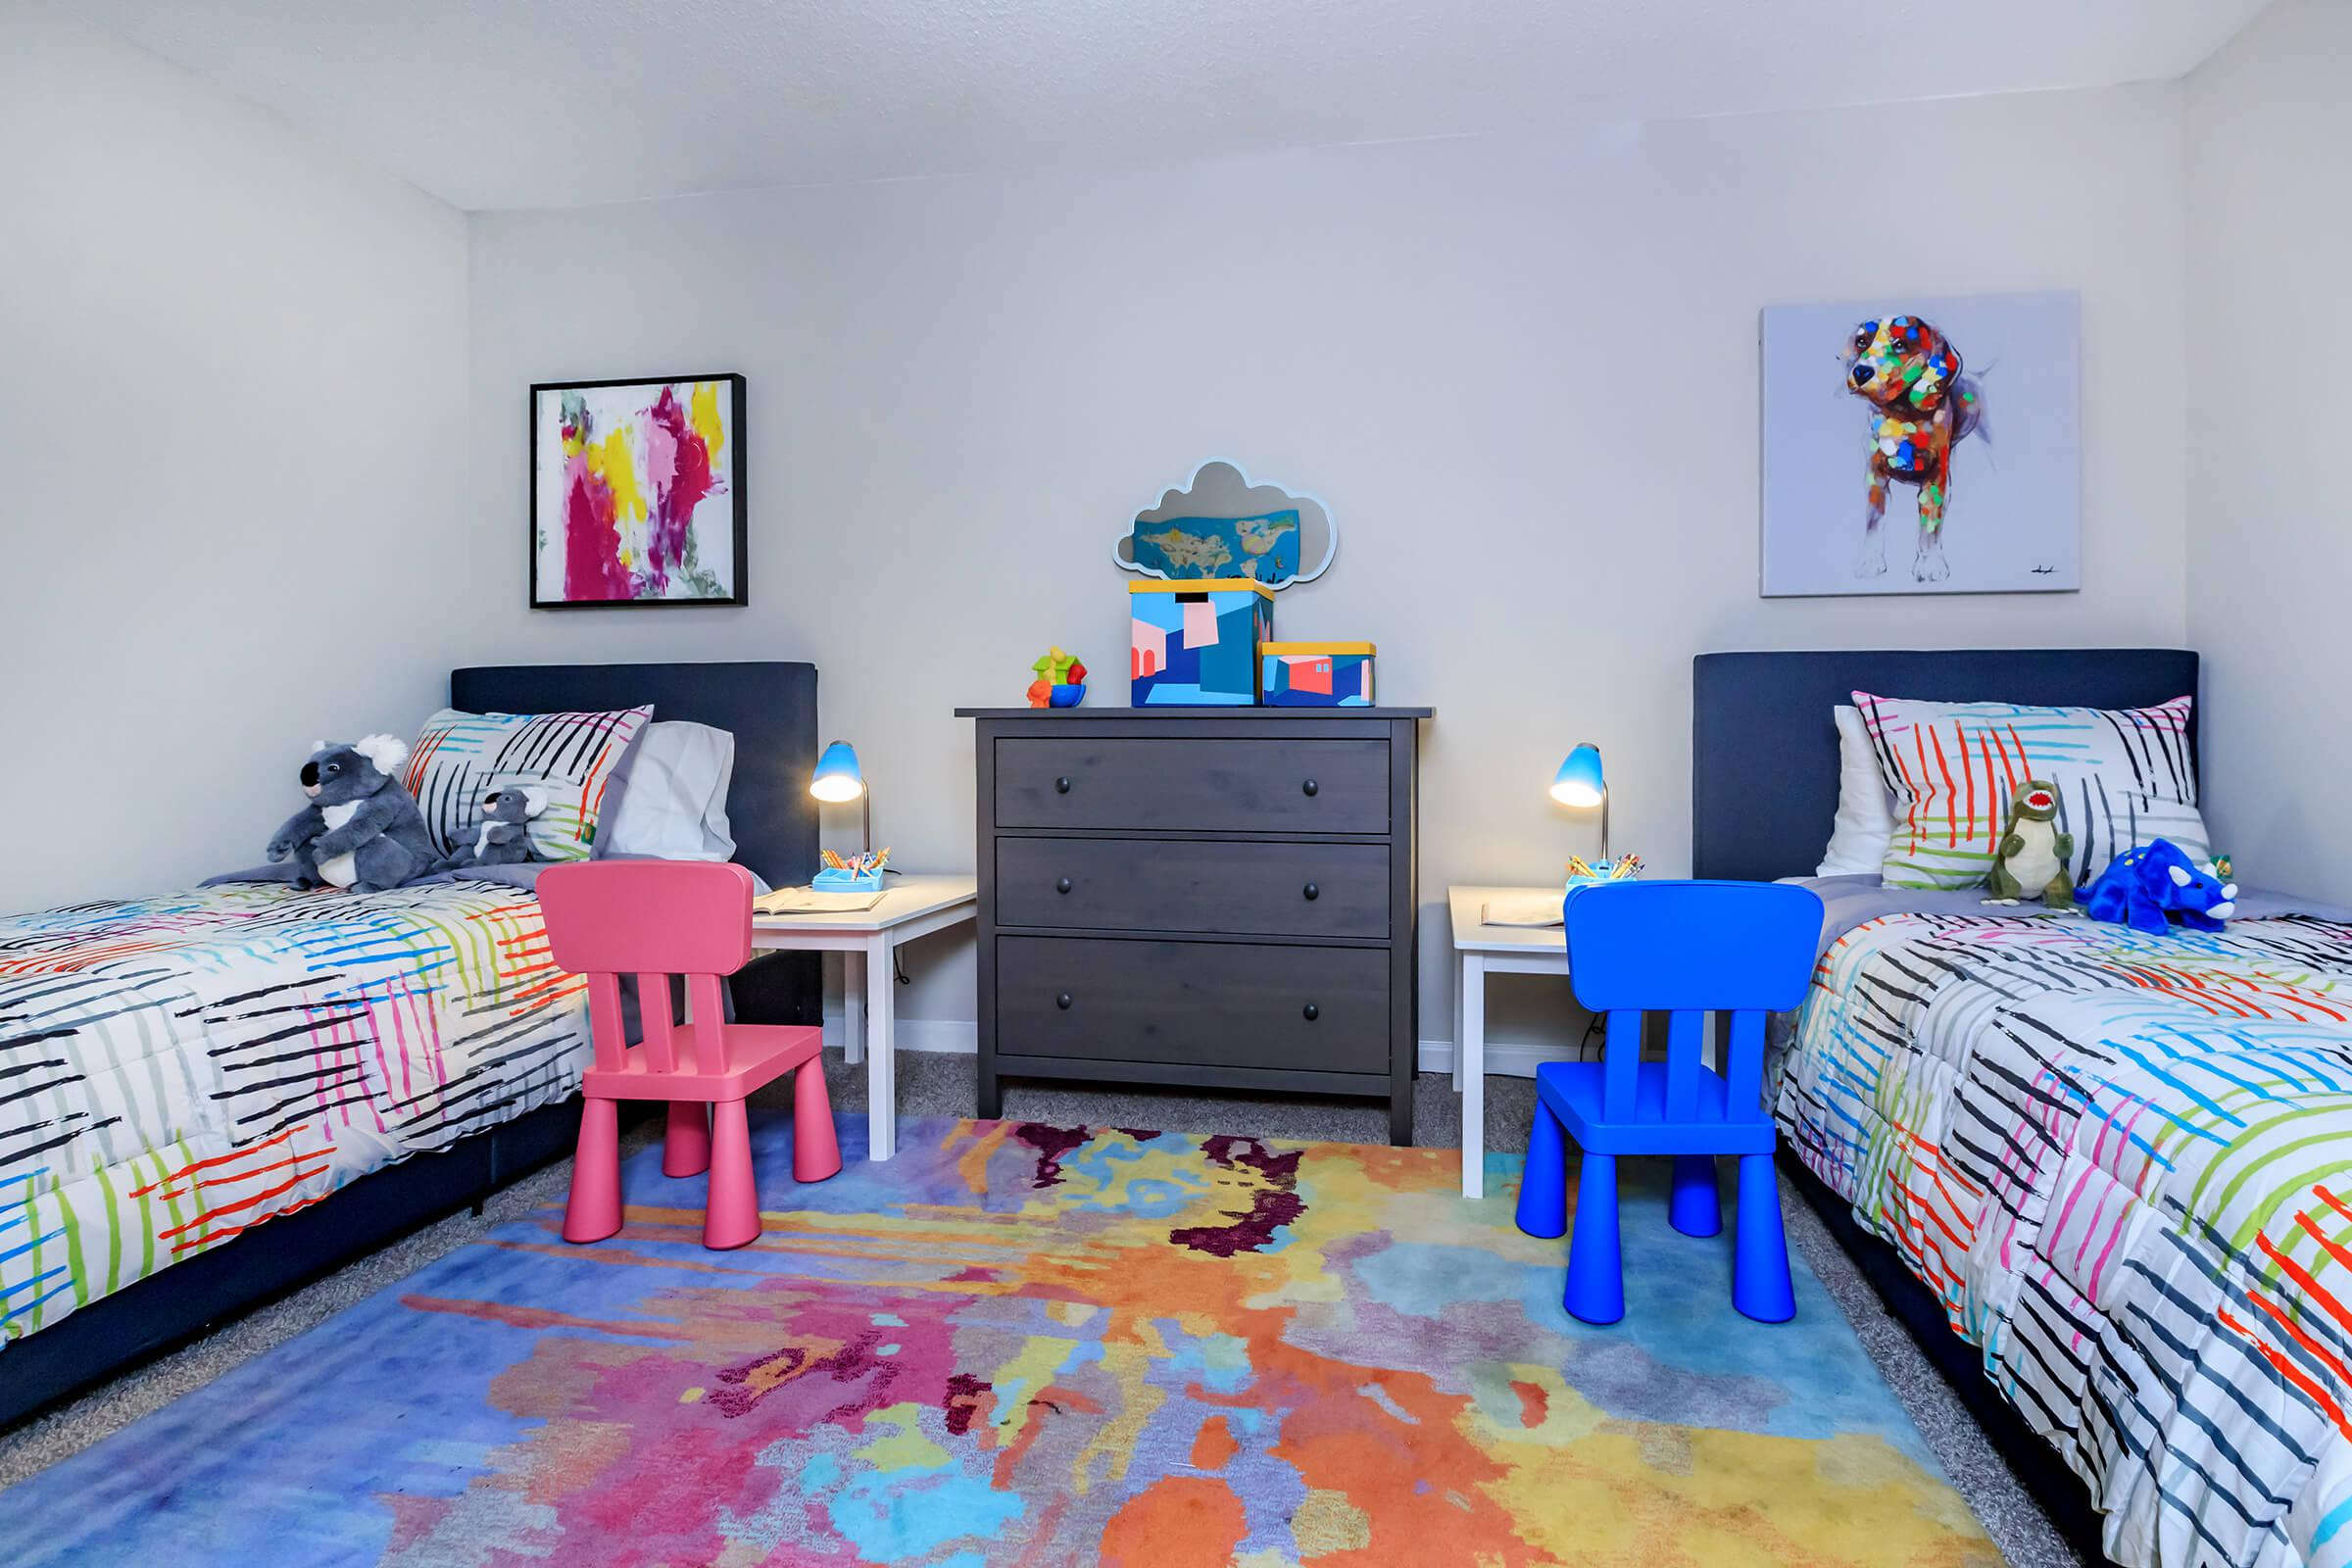 a colorful toy on a bed